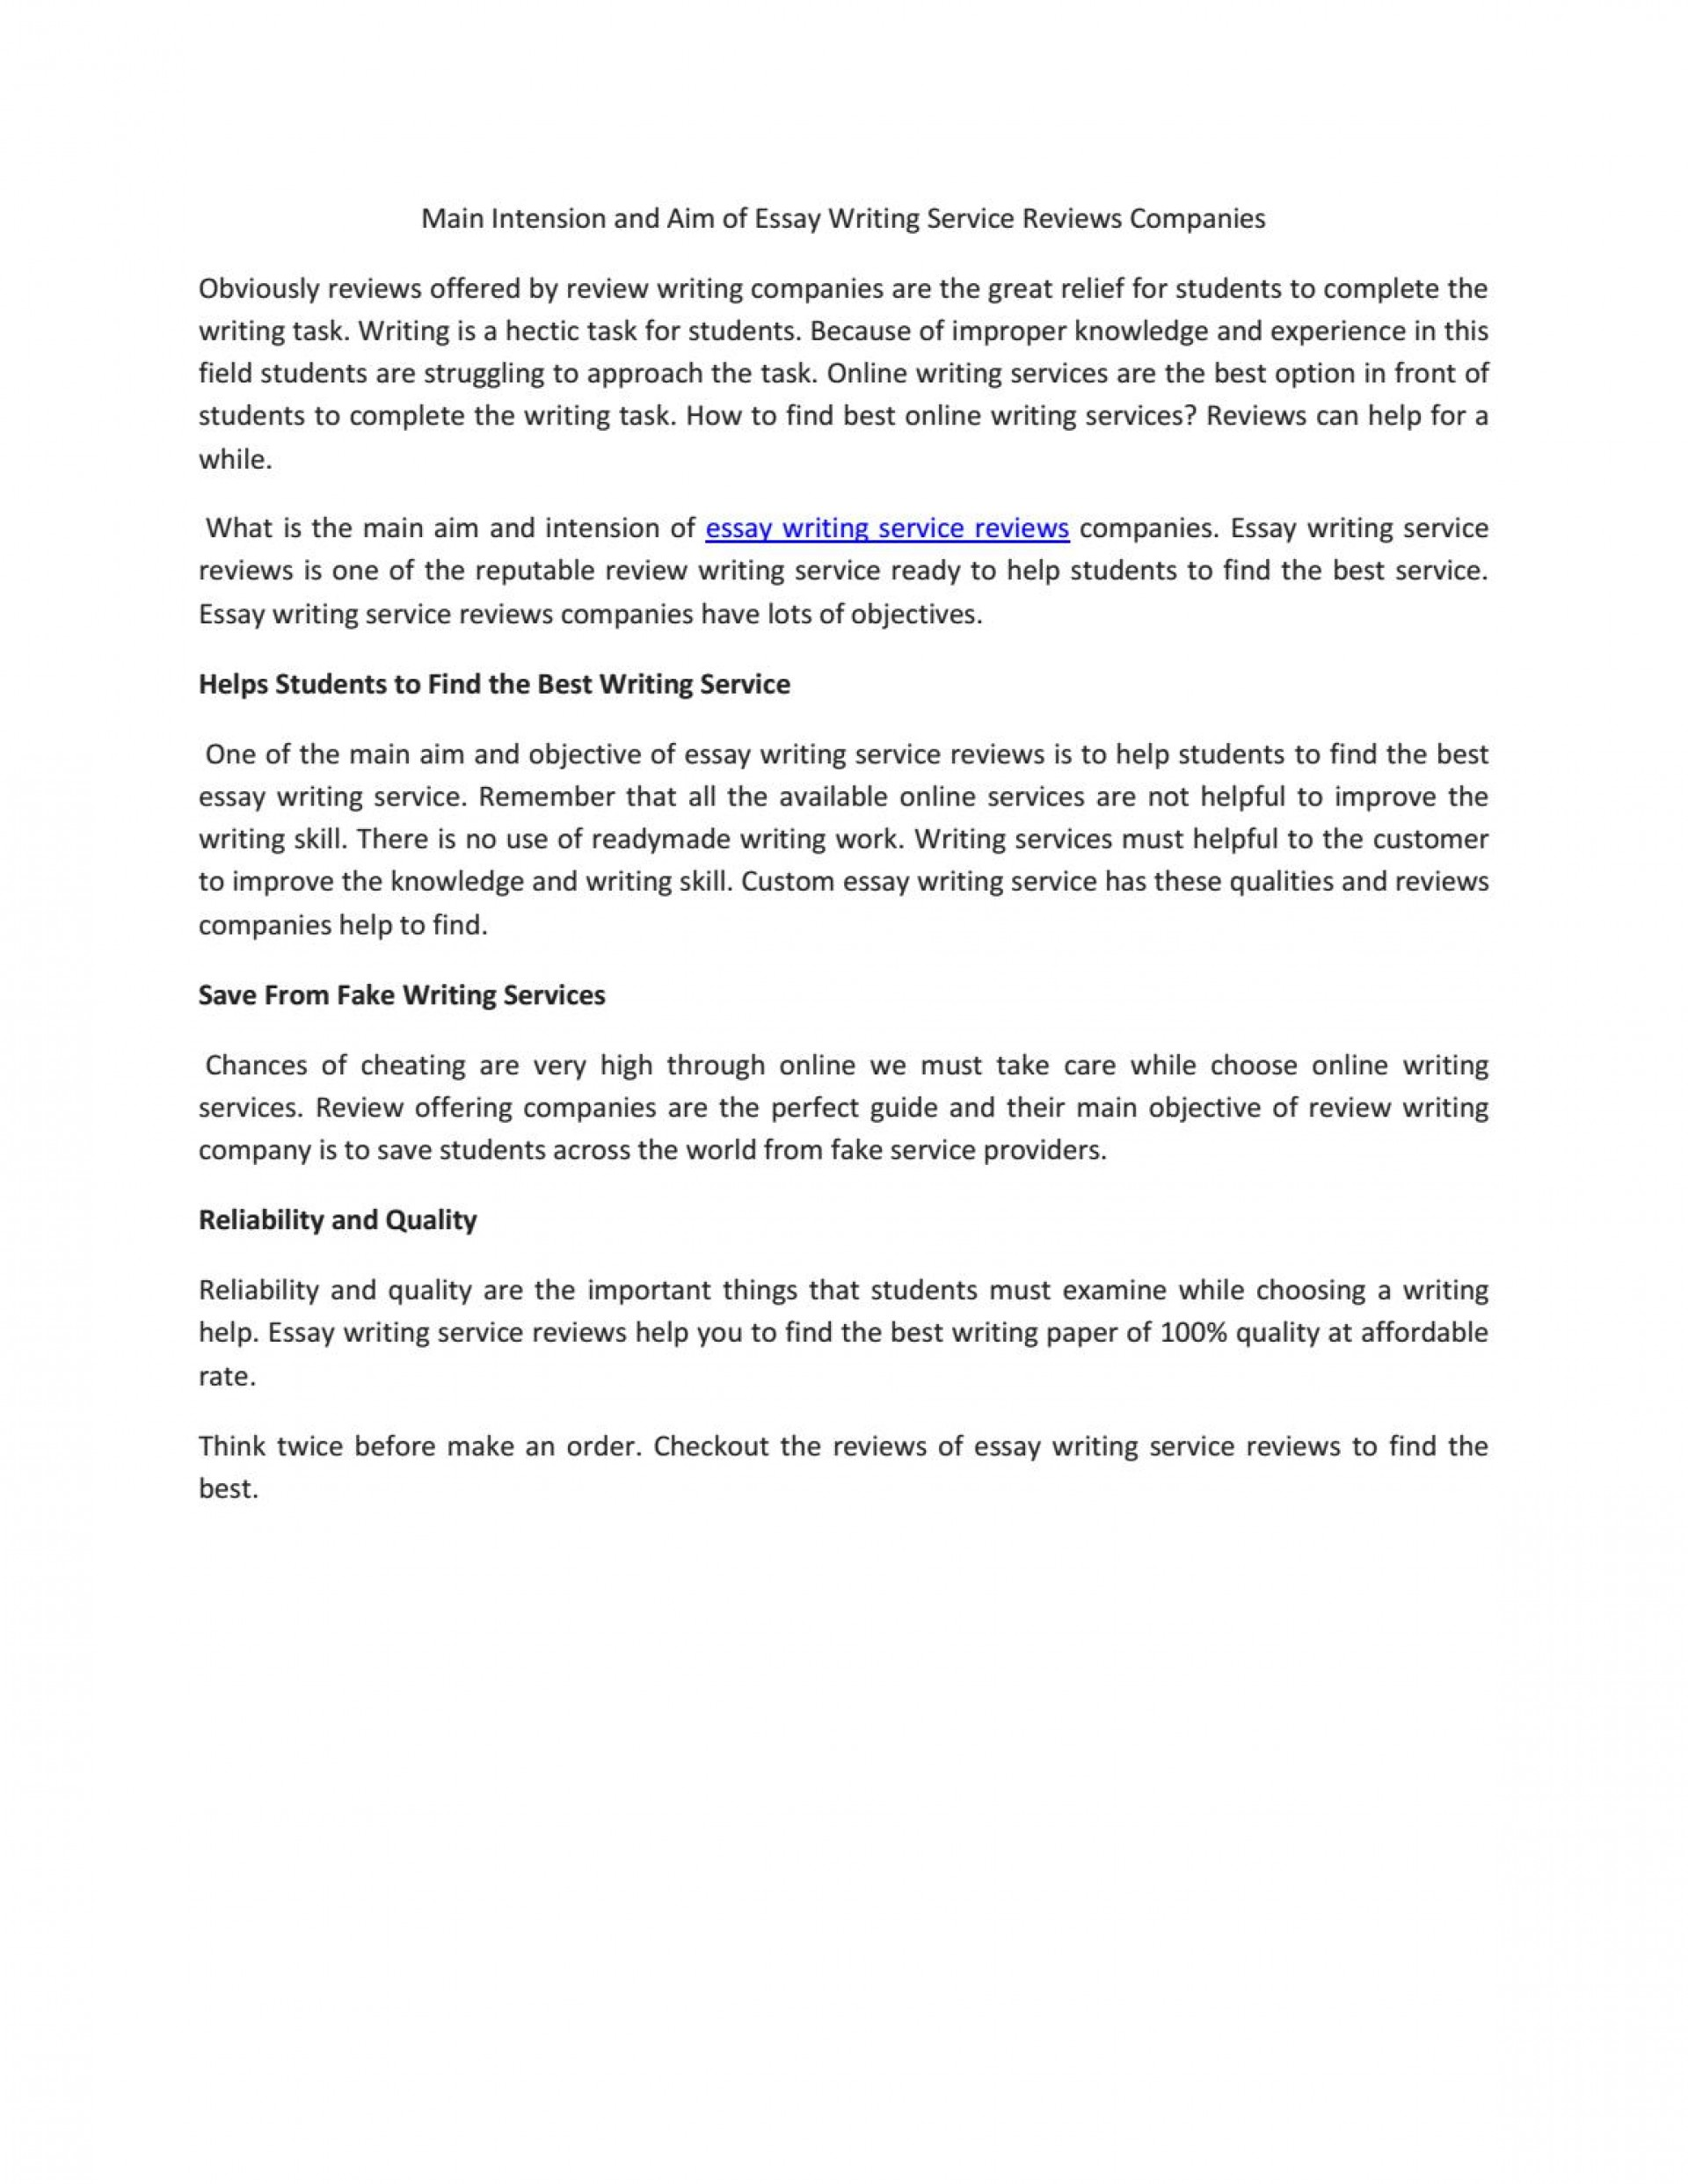 005 Essay Example Best Help Review Page 1 Impressive Writing Services Uk Reviews Service 1920